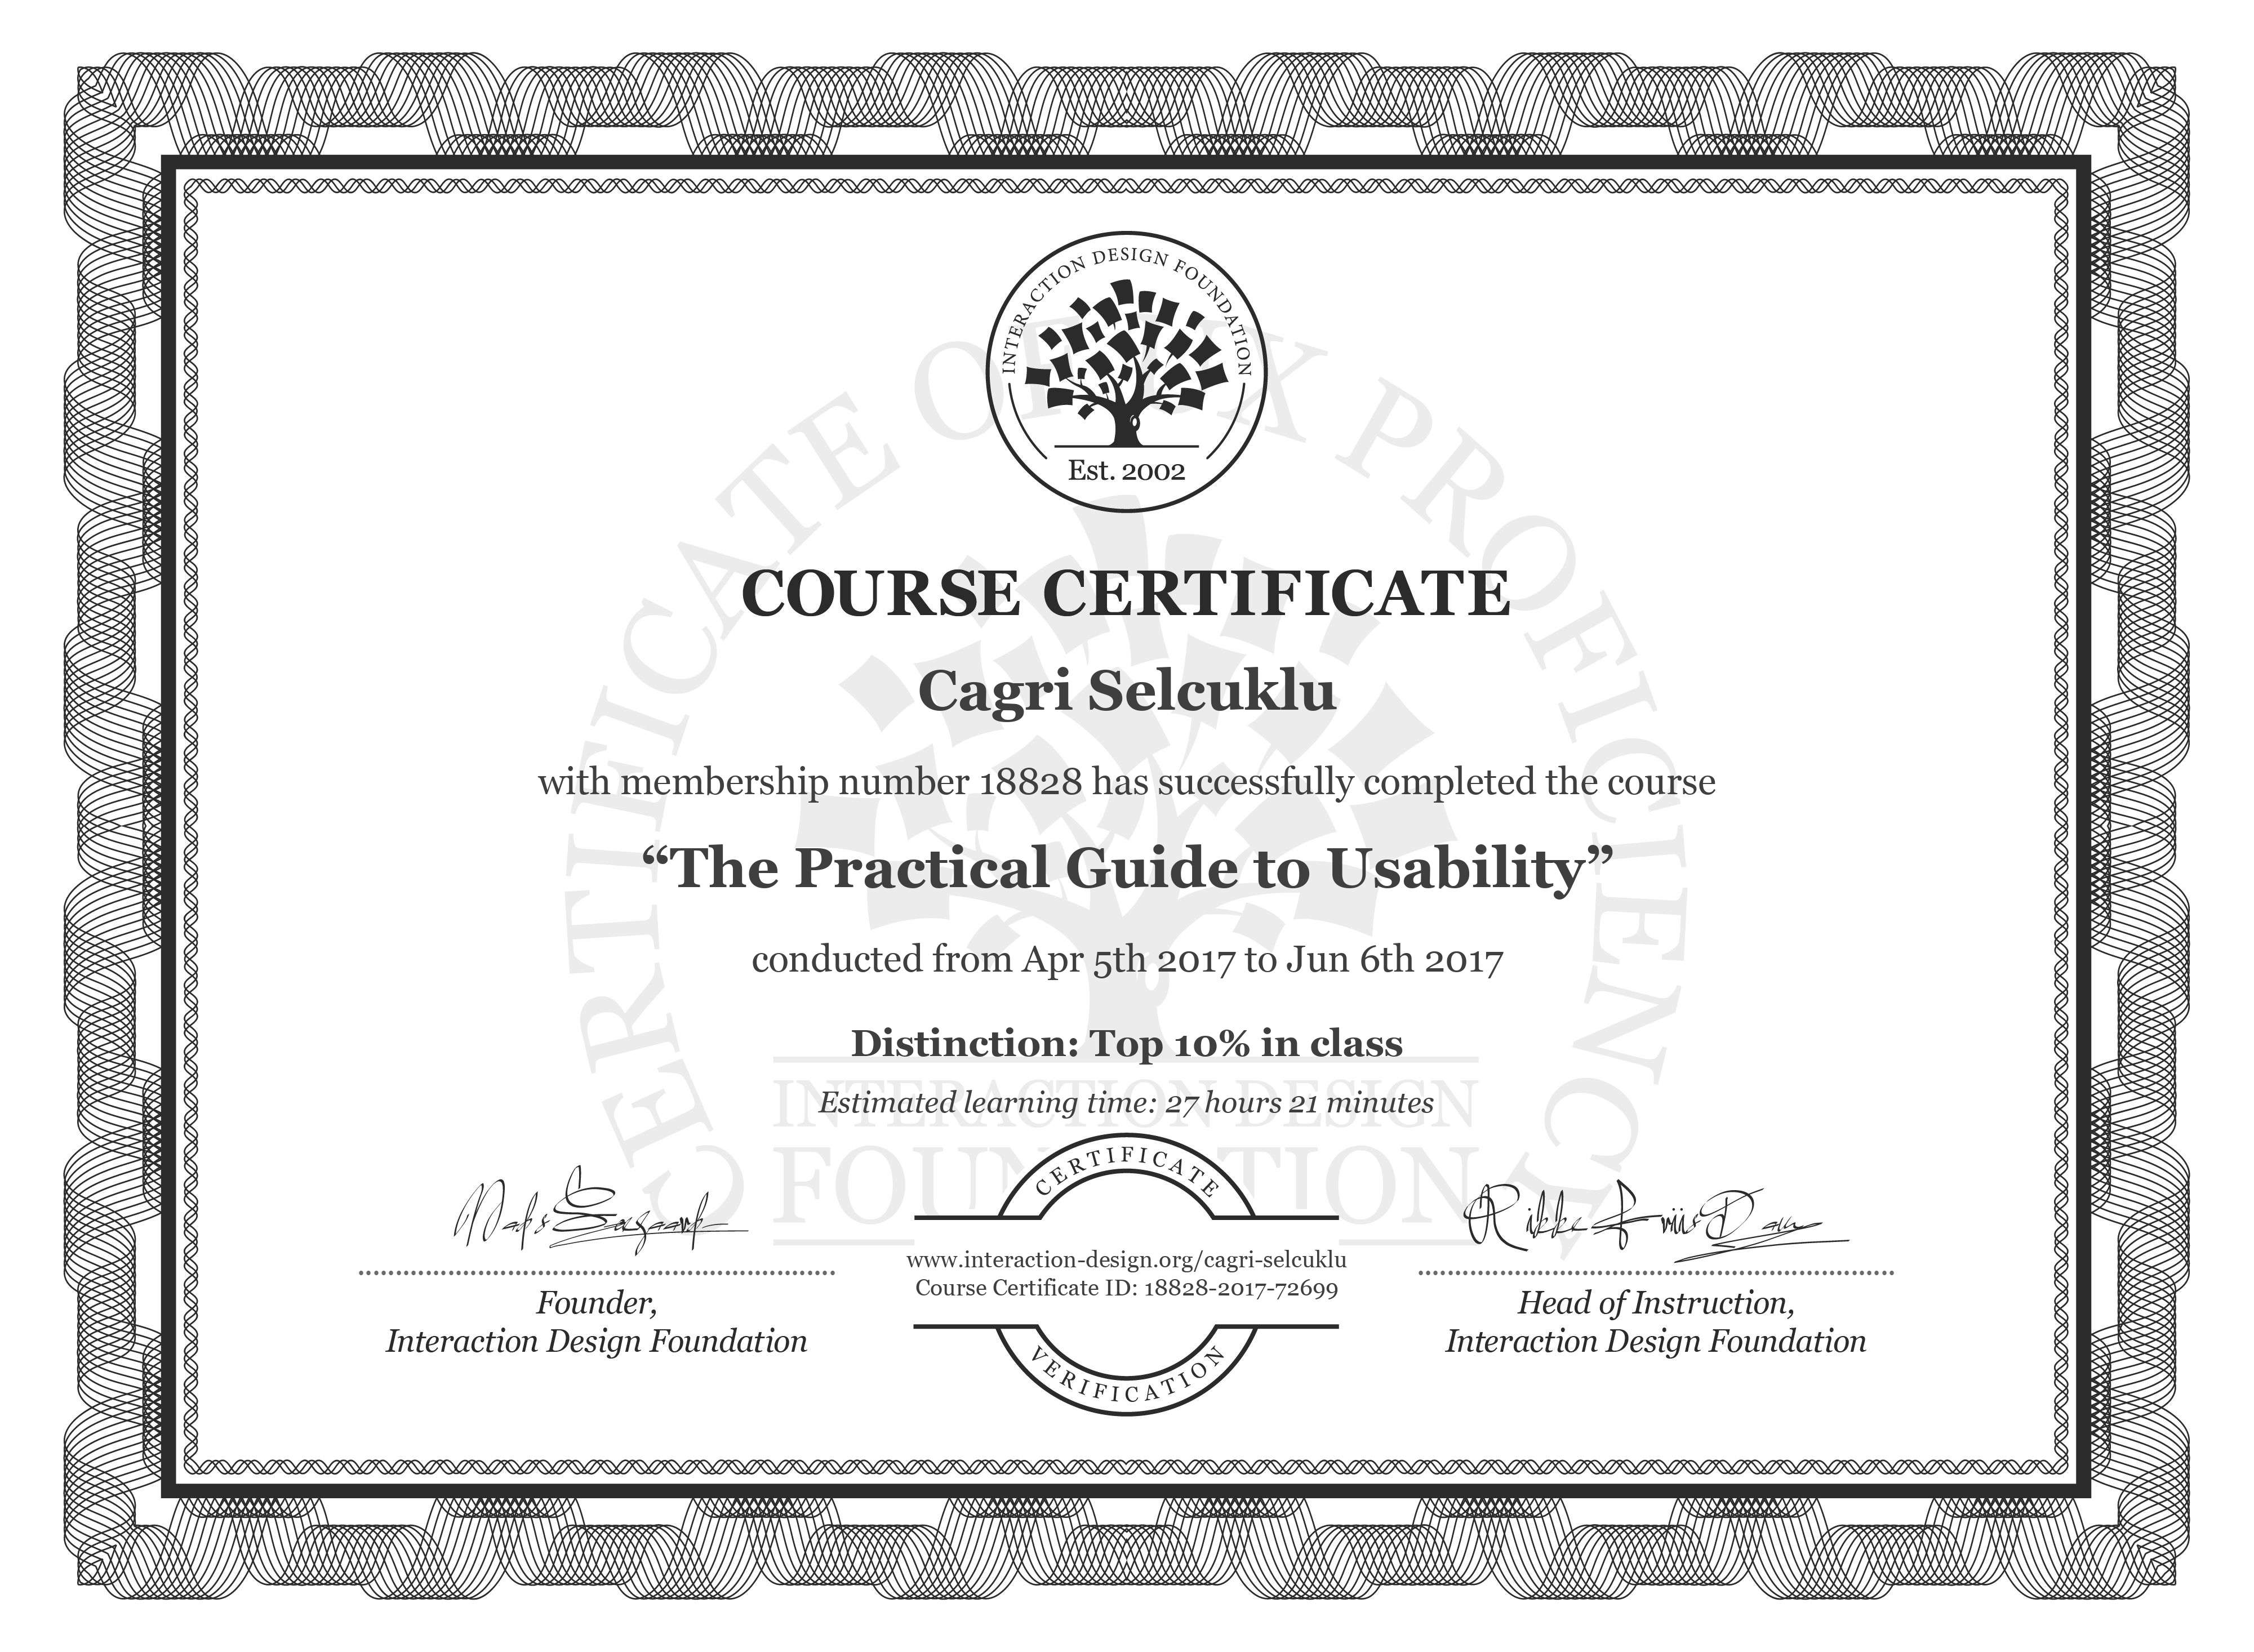 Cagri Selcuklu: Course Certificate - The Practical Guide to Usability